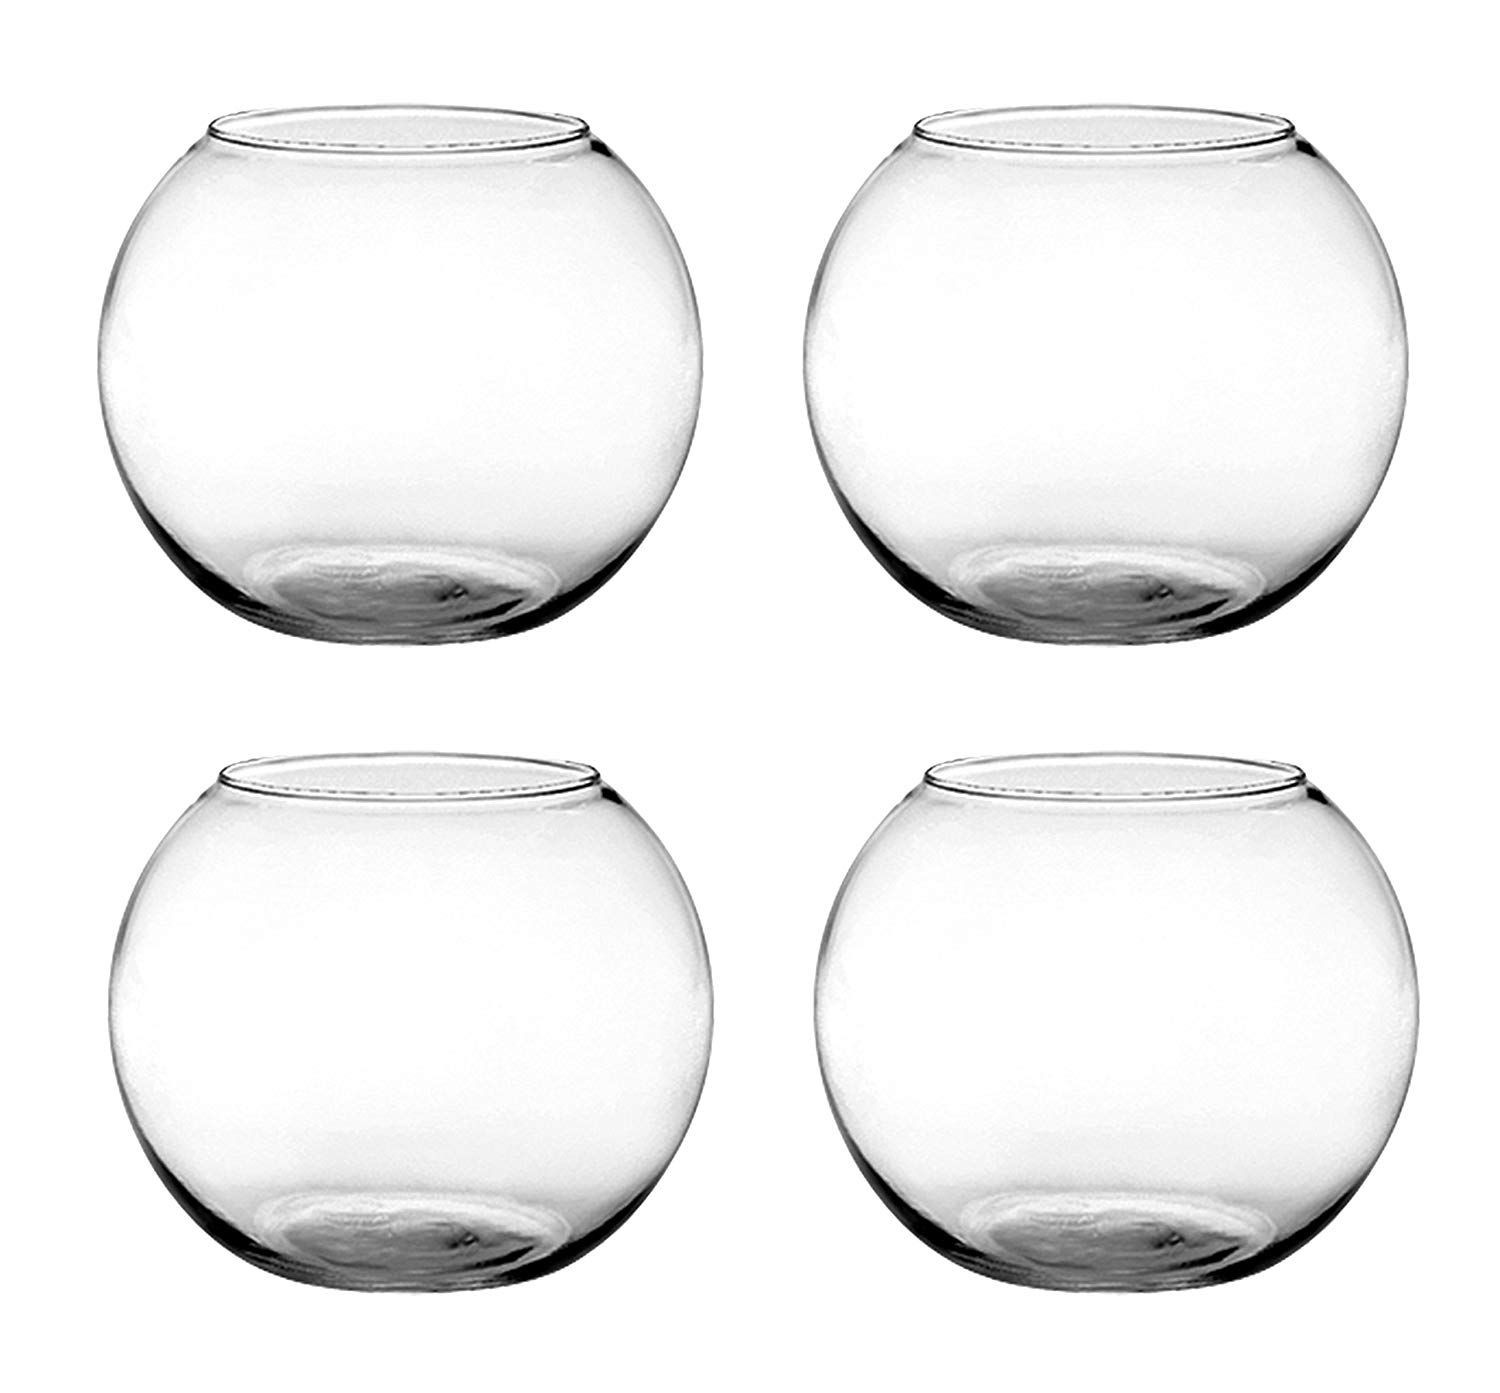 28 Stylish Multi Bud Vase 2021 free download multi bud vase of 32 wide mouth vase the weekly world within amazon syndicate sales 6 rose bowl clear planters garden